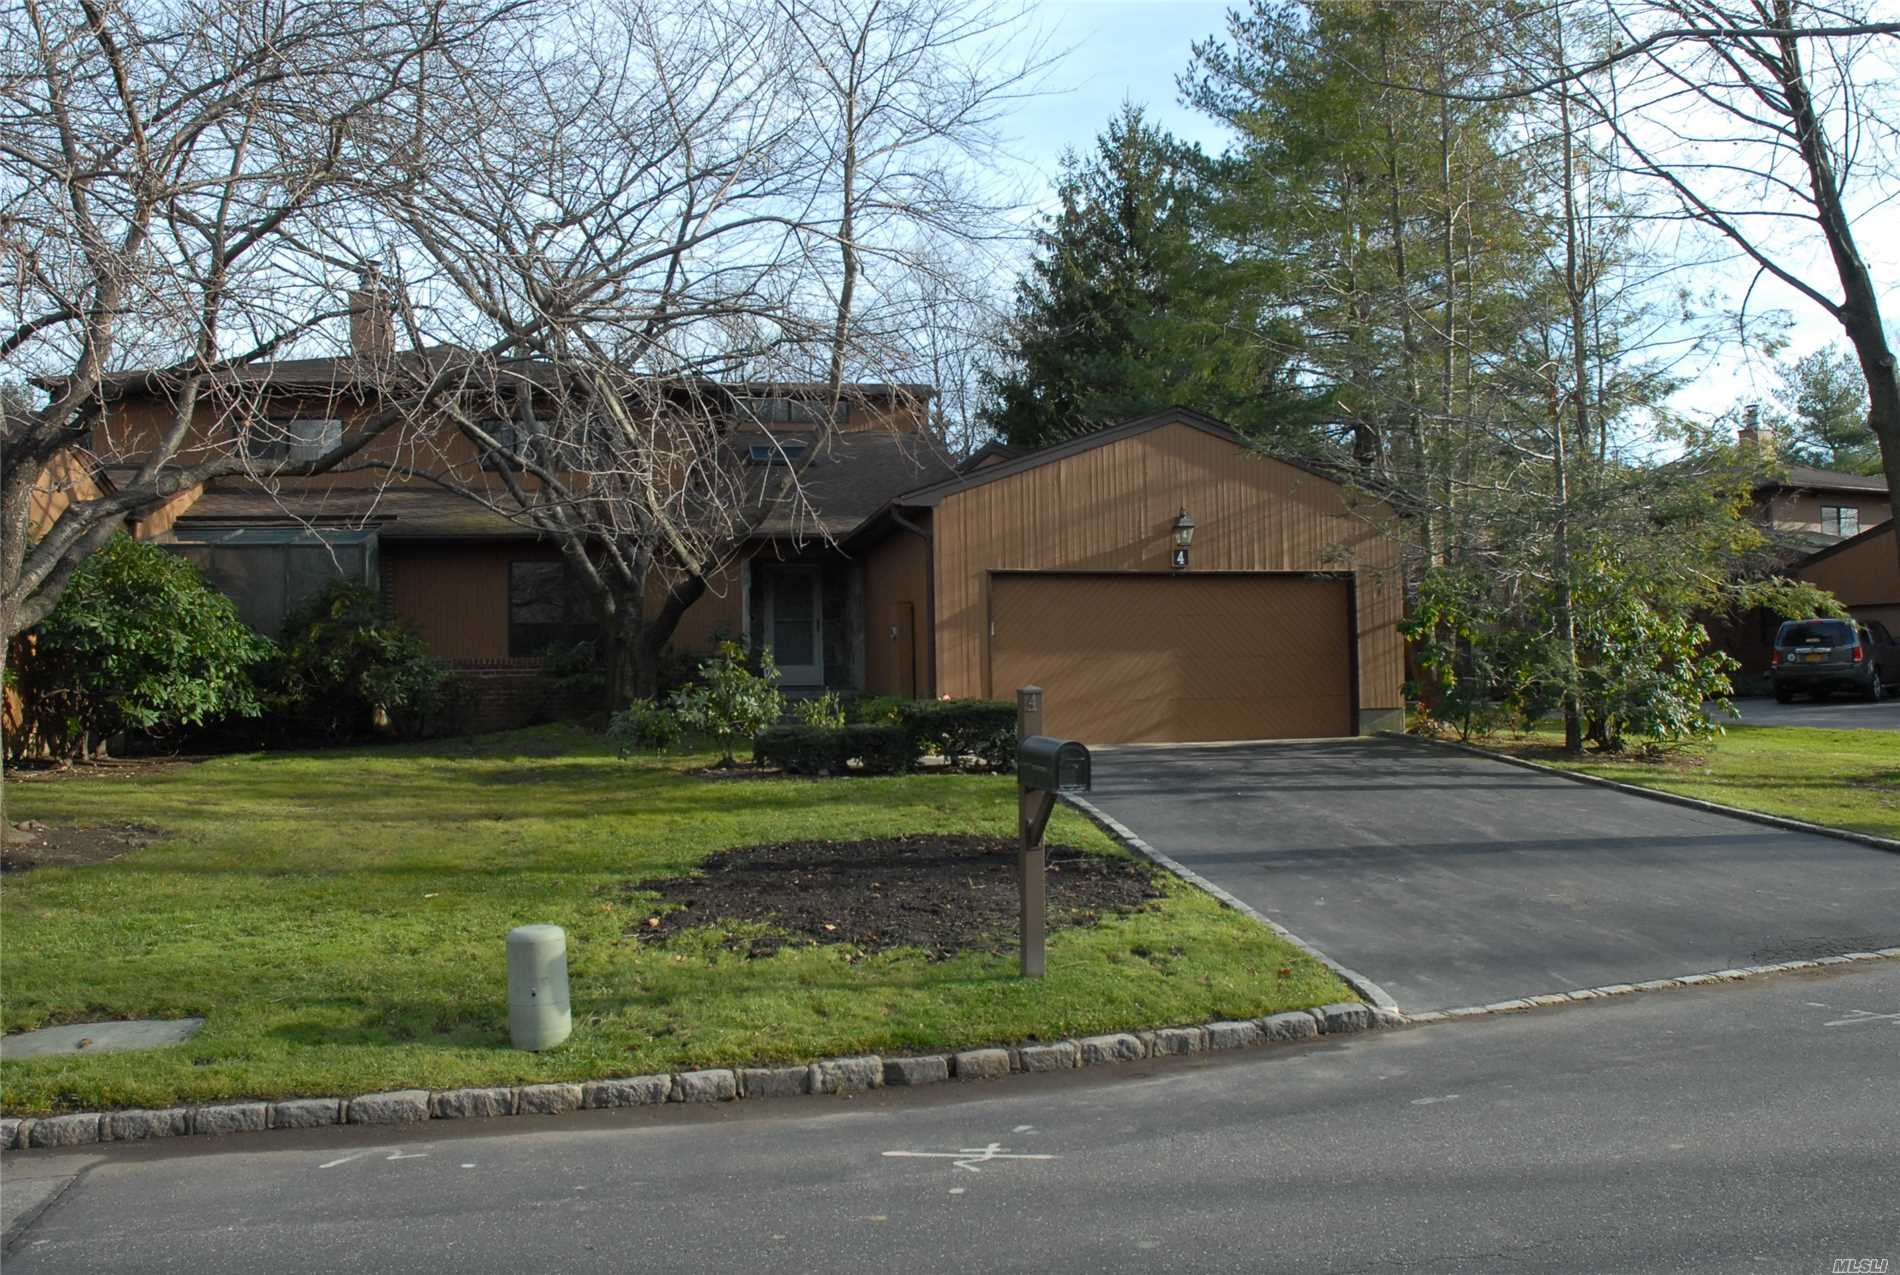 Newly Redone Balmoral Model Modern Unit. Master Bdr Suite Located At 1st Floor With Guest Suite. Gated Community And Easy Access To Highways And Lirr.